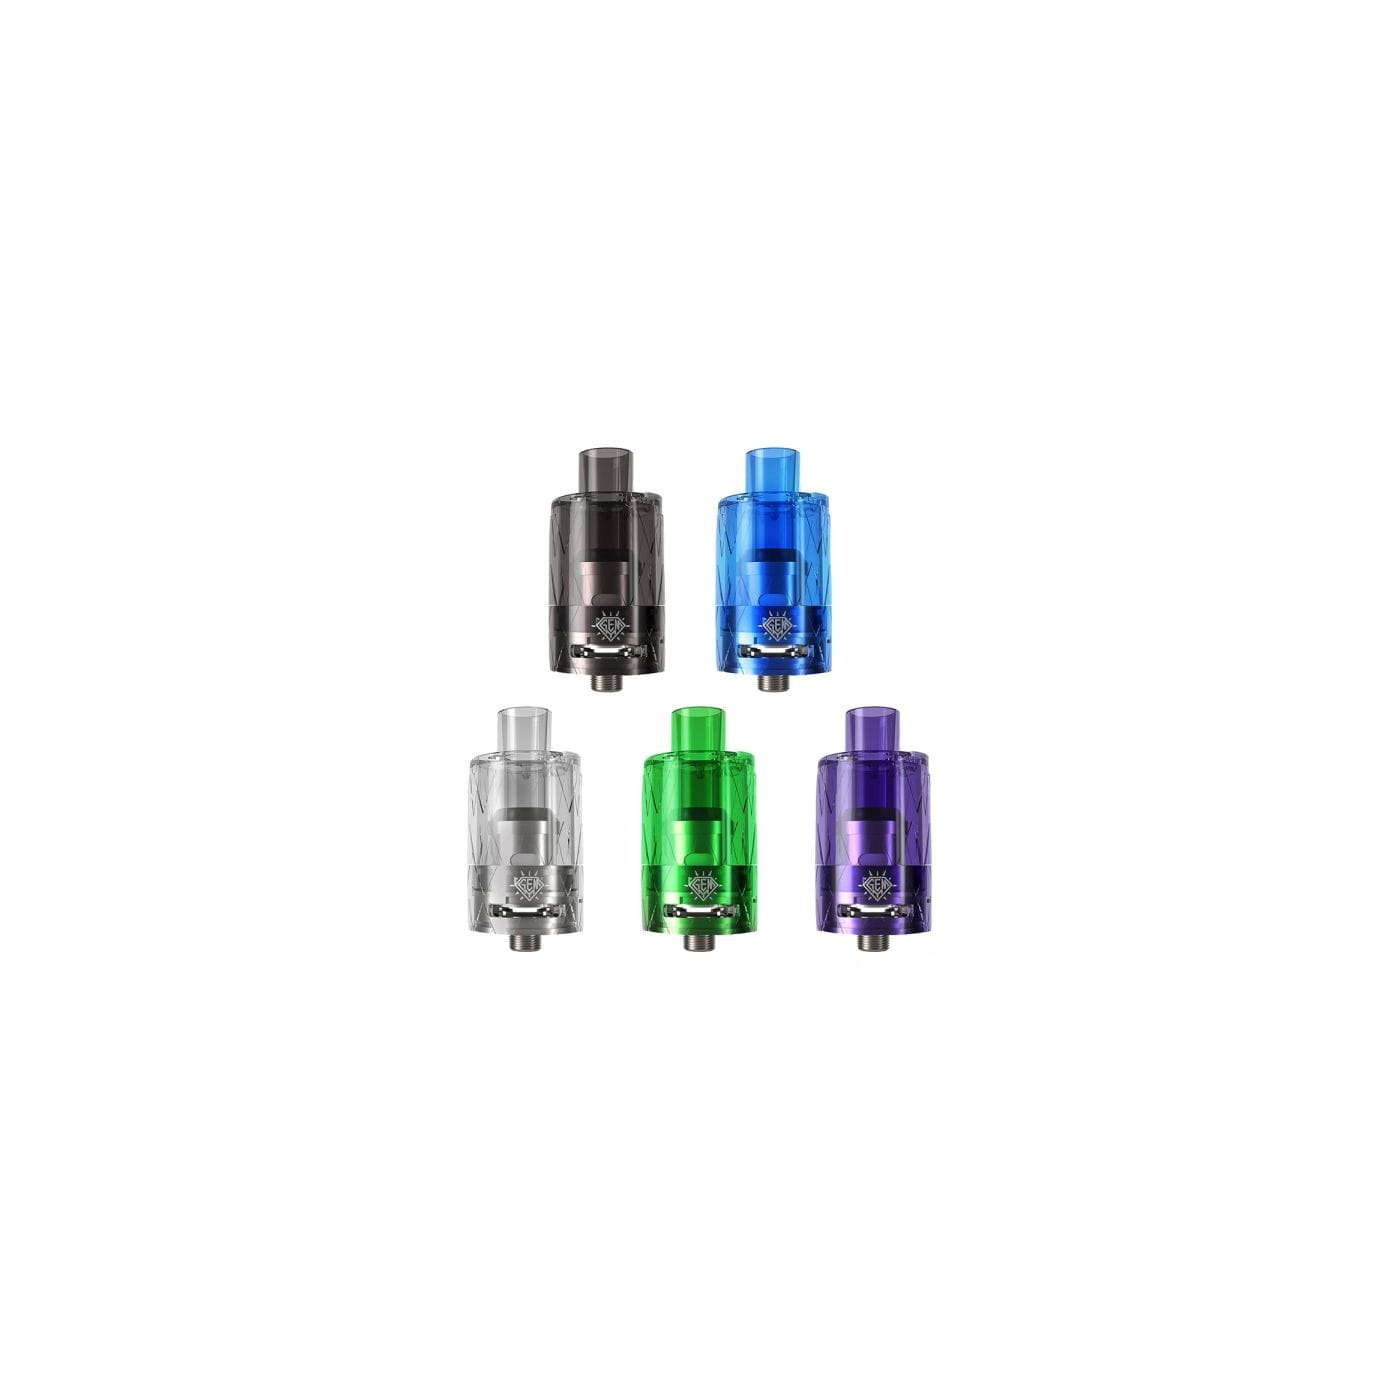 Freemax GEMM G1 Disposable Mesh Tank - 2 Pack